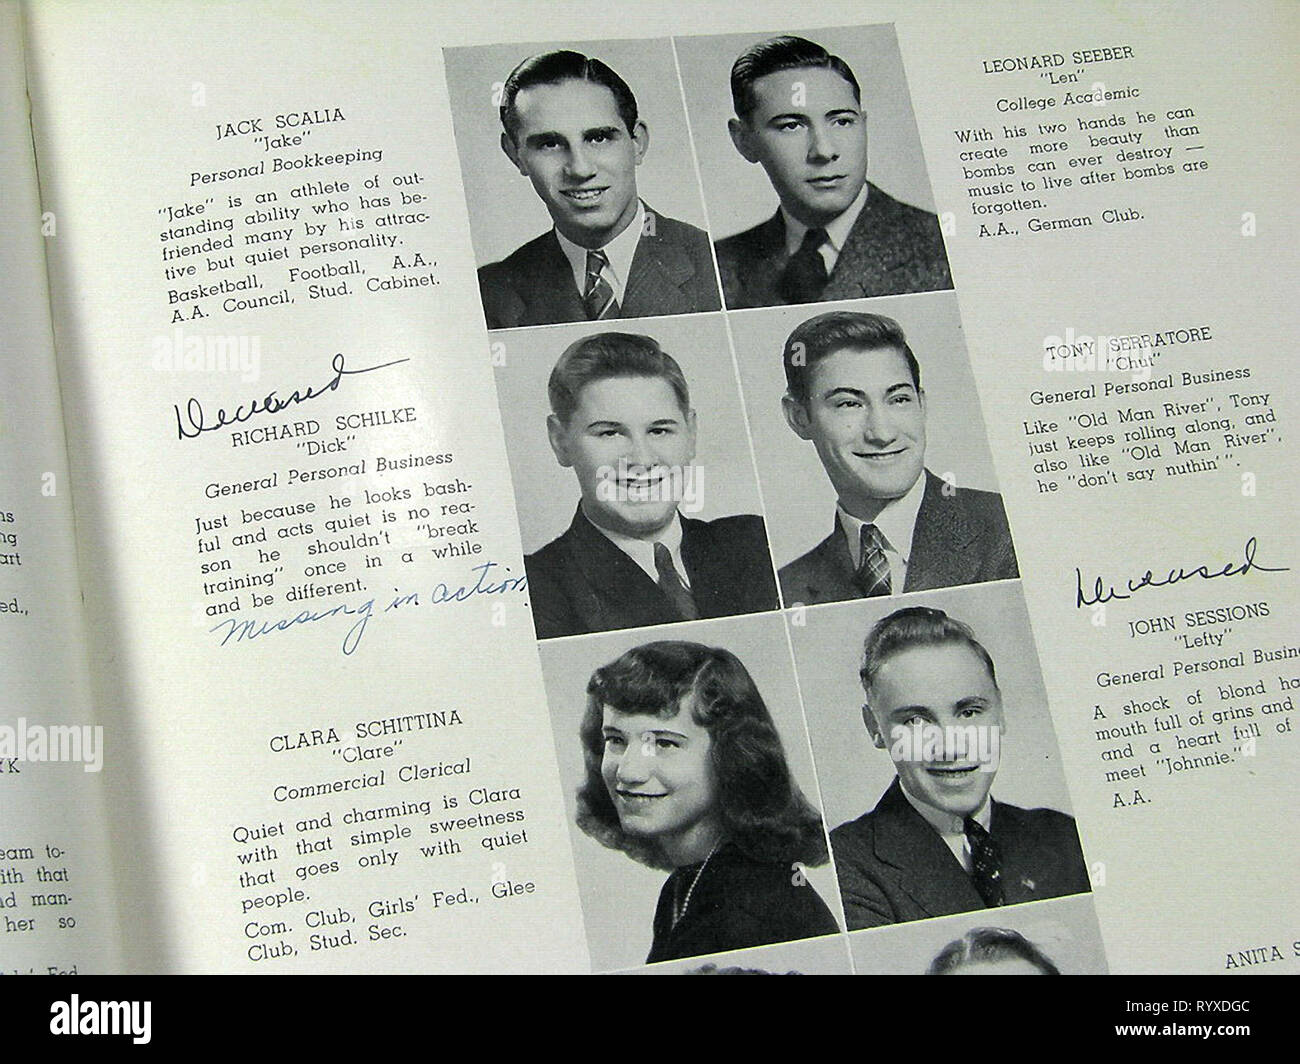 Casualties of war in the Bristol High School Class of 1942 and many other yearbooks across America during the Second World War. - Stock Image